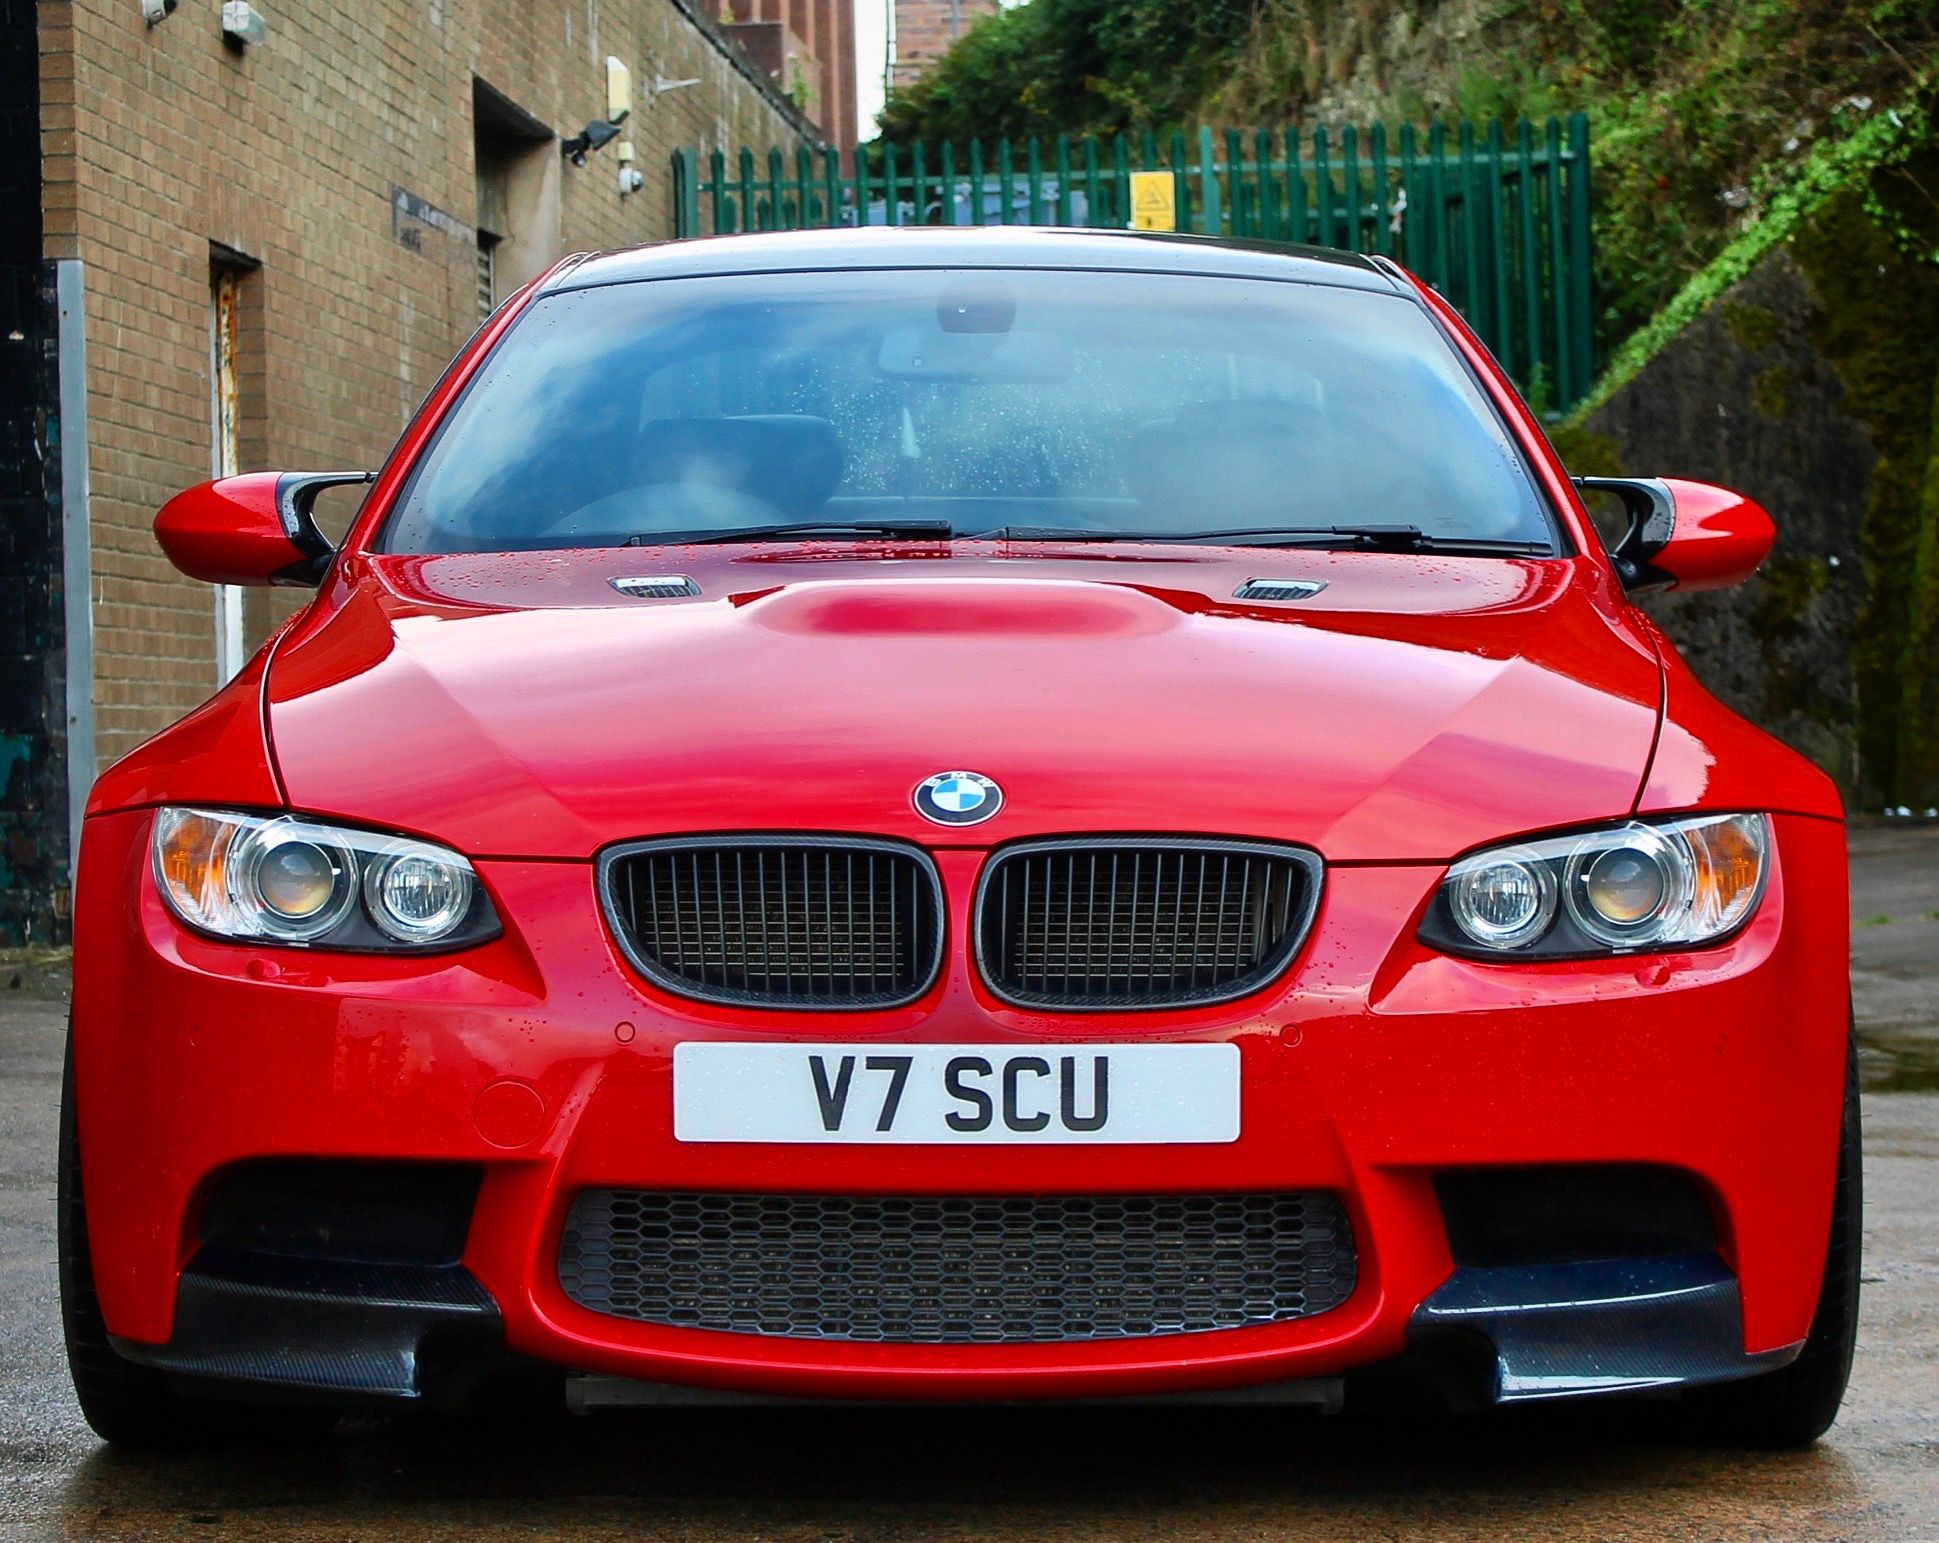 hight resolution of 2012 bmw e92 m3 individual japan red 1 of 37 competition pack edc